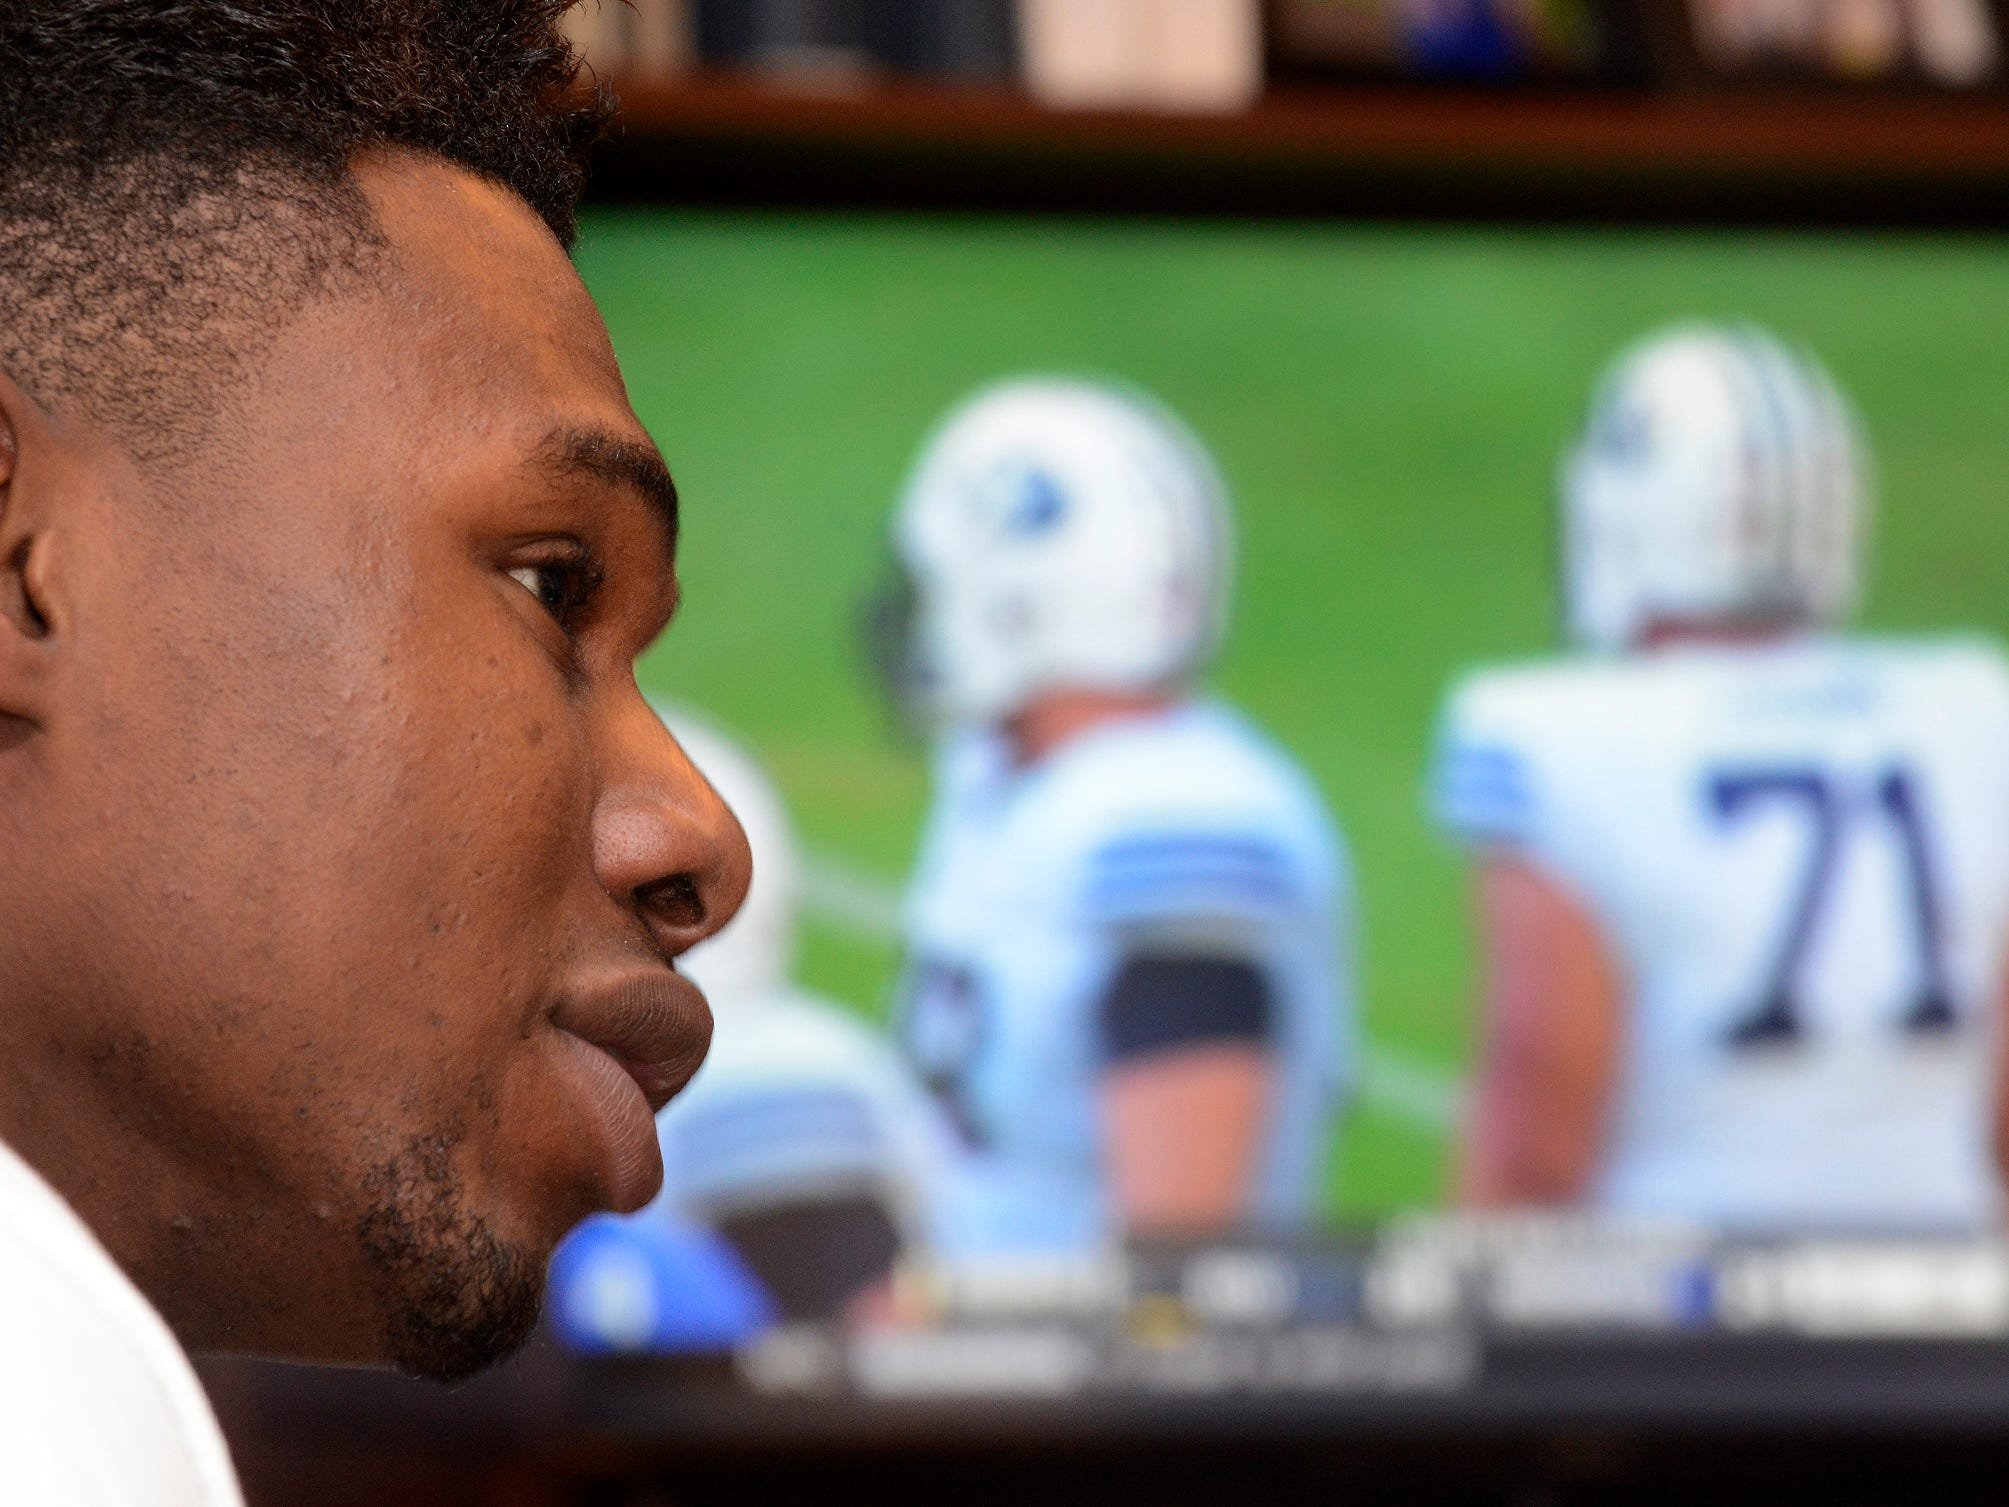 Prince Tega Wanogho Junior at the home of his sponsor family, the Taylors, in Montgomery, Ala. on Monday December 23, 2014. The Edgewood Academy foreign exchange student from Nigeria played football for the first time four months ago and is now being offered scholarships from Division I schools all over the country.